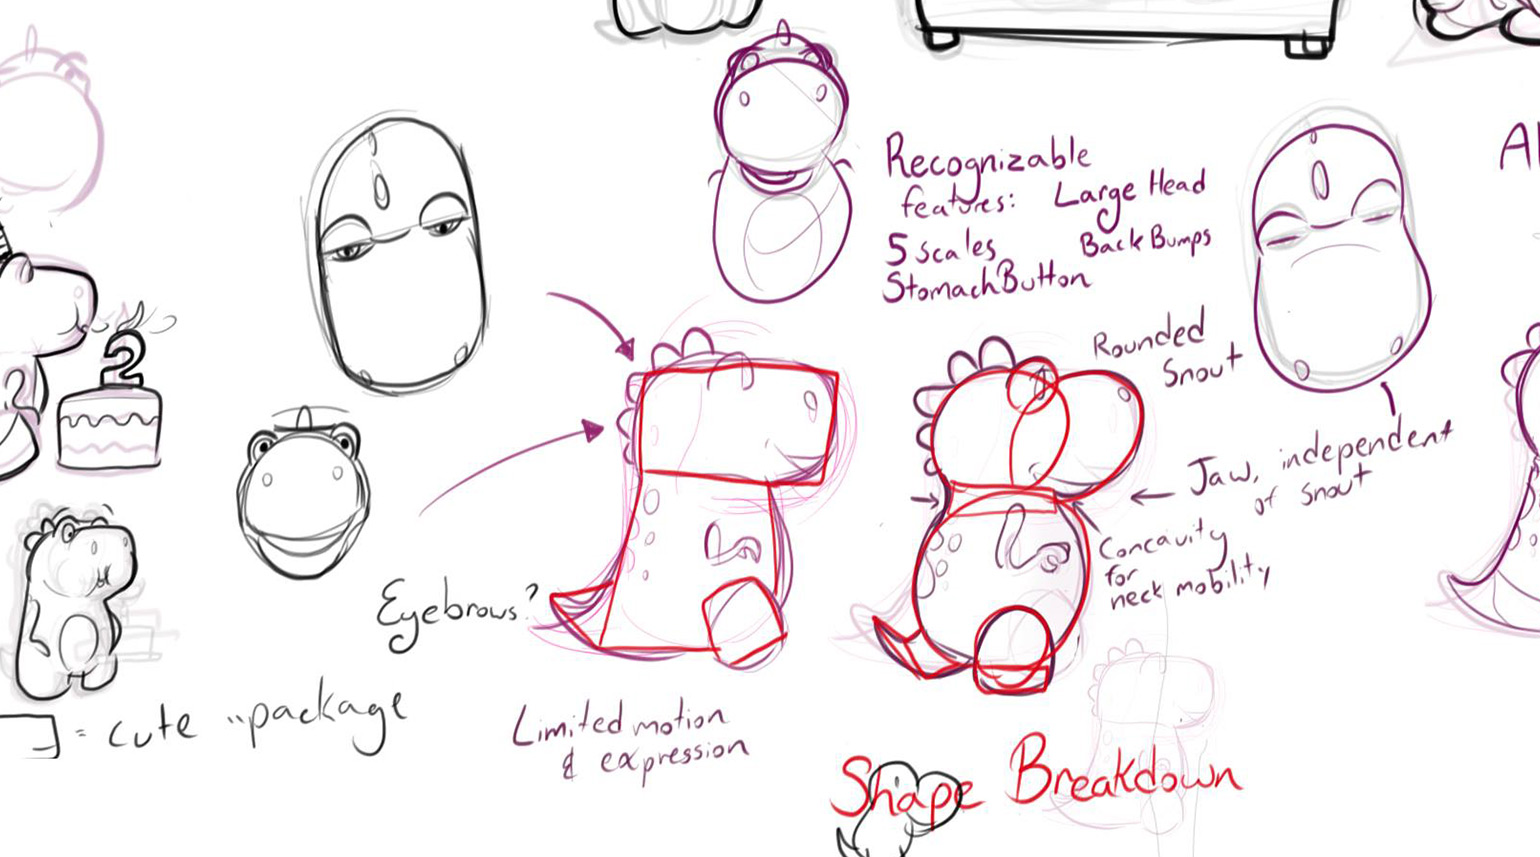 Initial sketches for the CogniToys dinosuar product design.